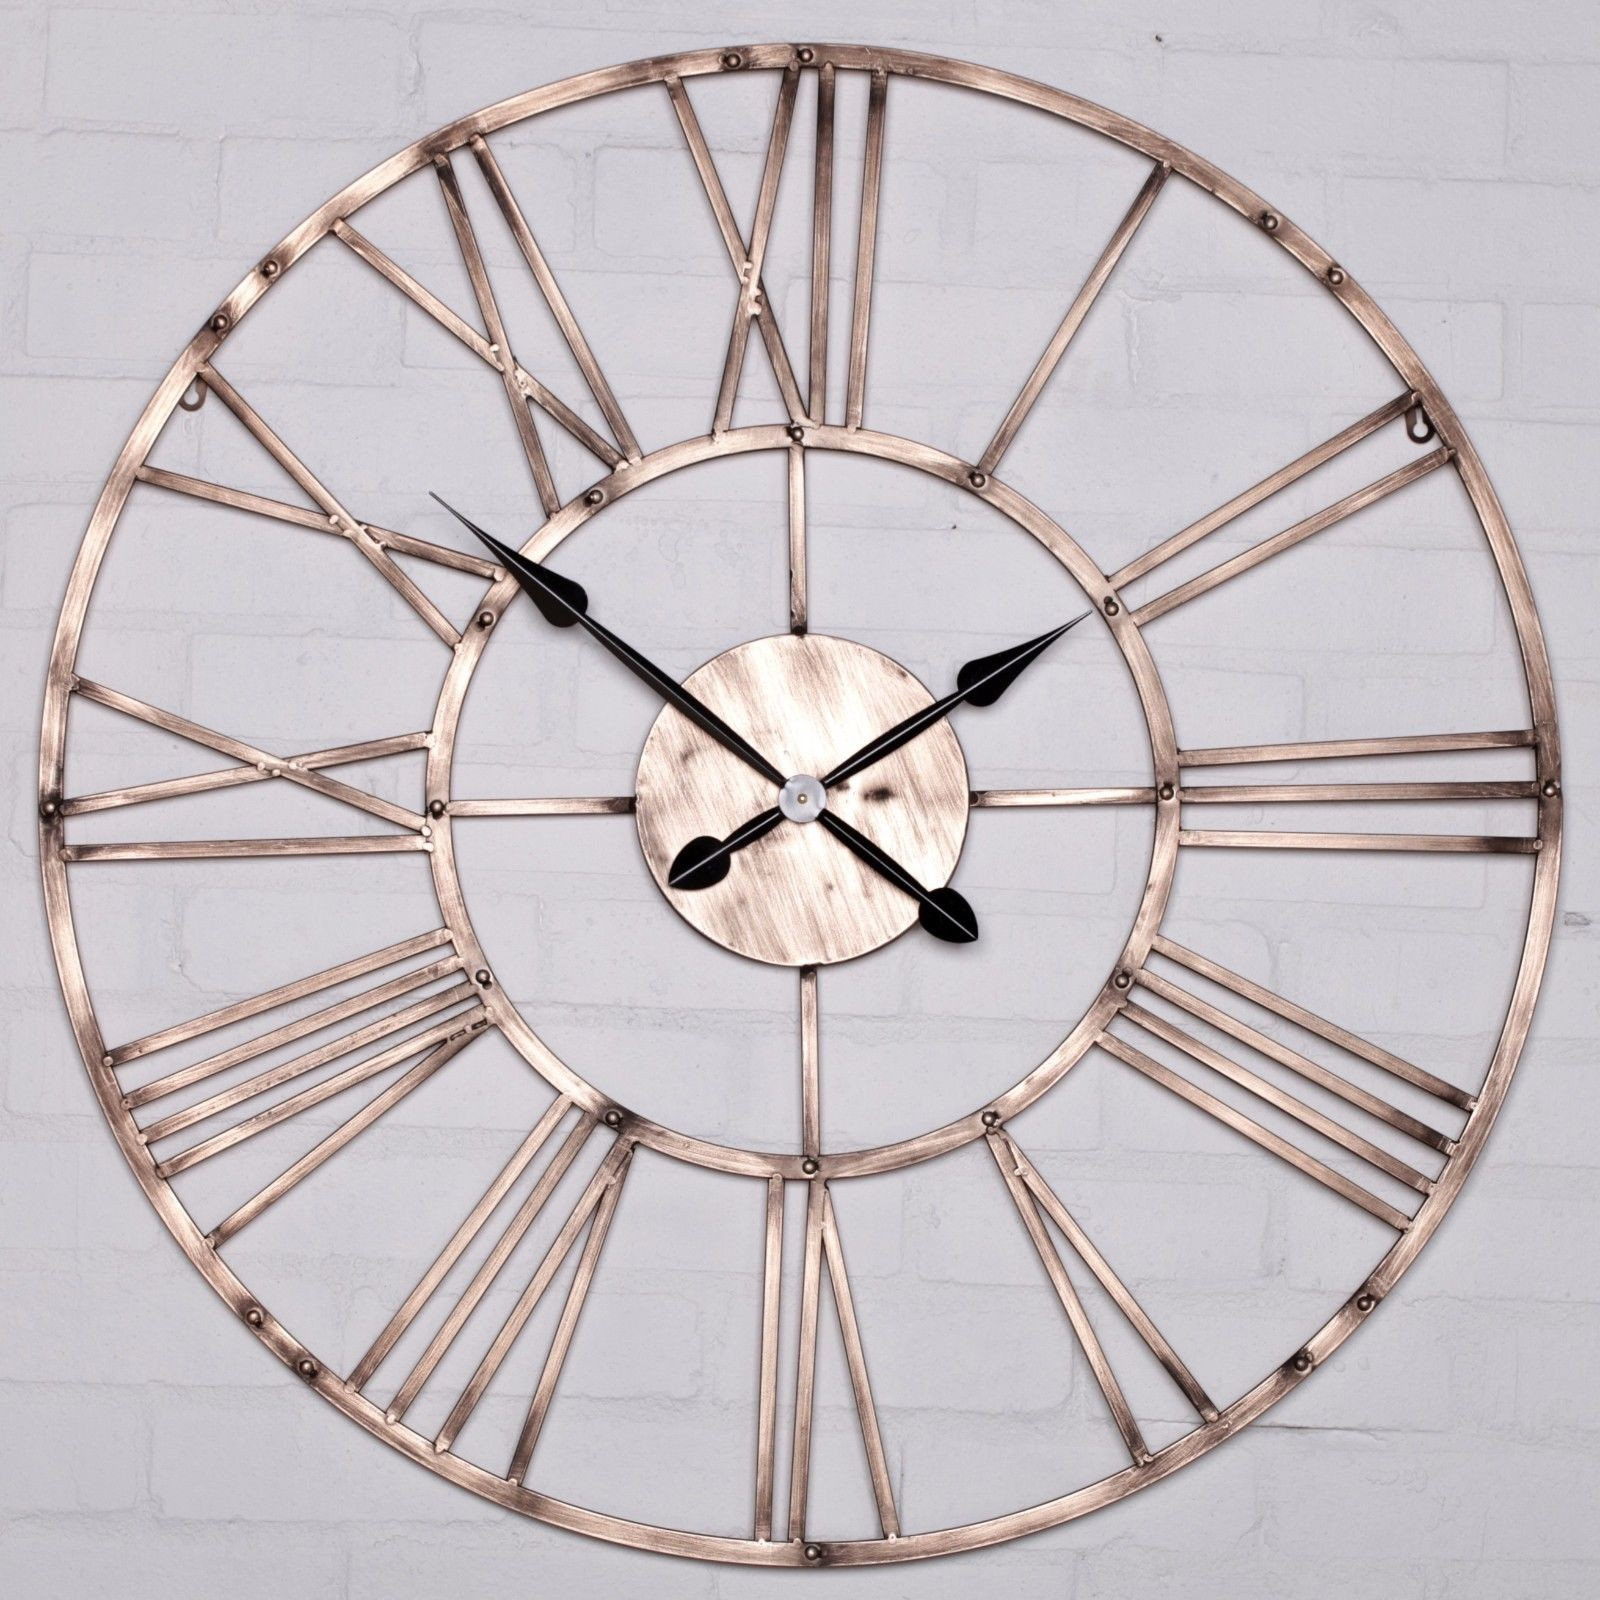 Vintage Copper Effect Metal Wall Clock Furniture La